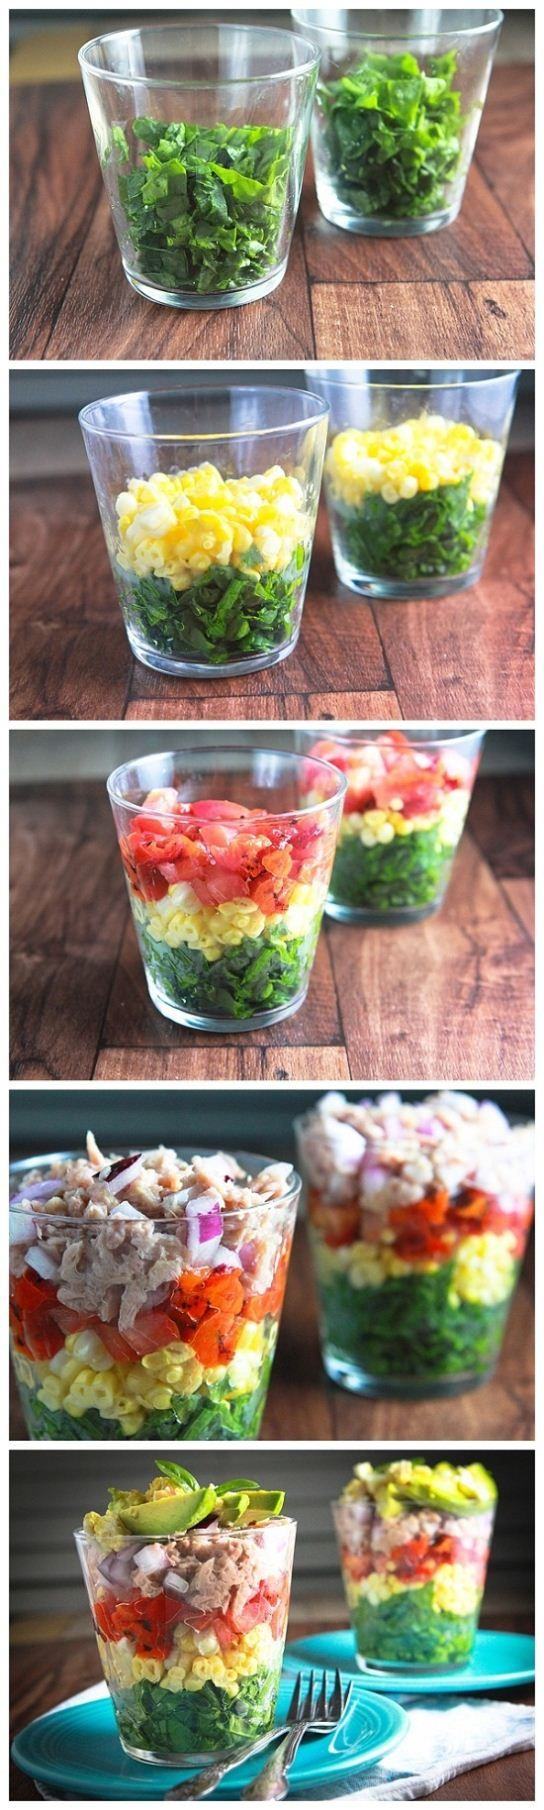 Recipes for salad buffets